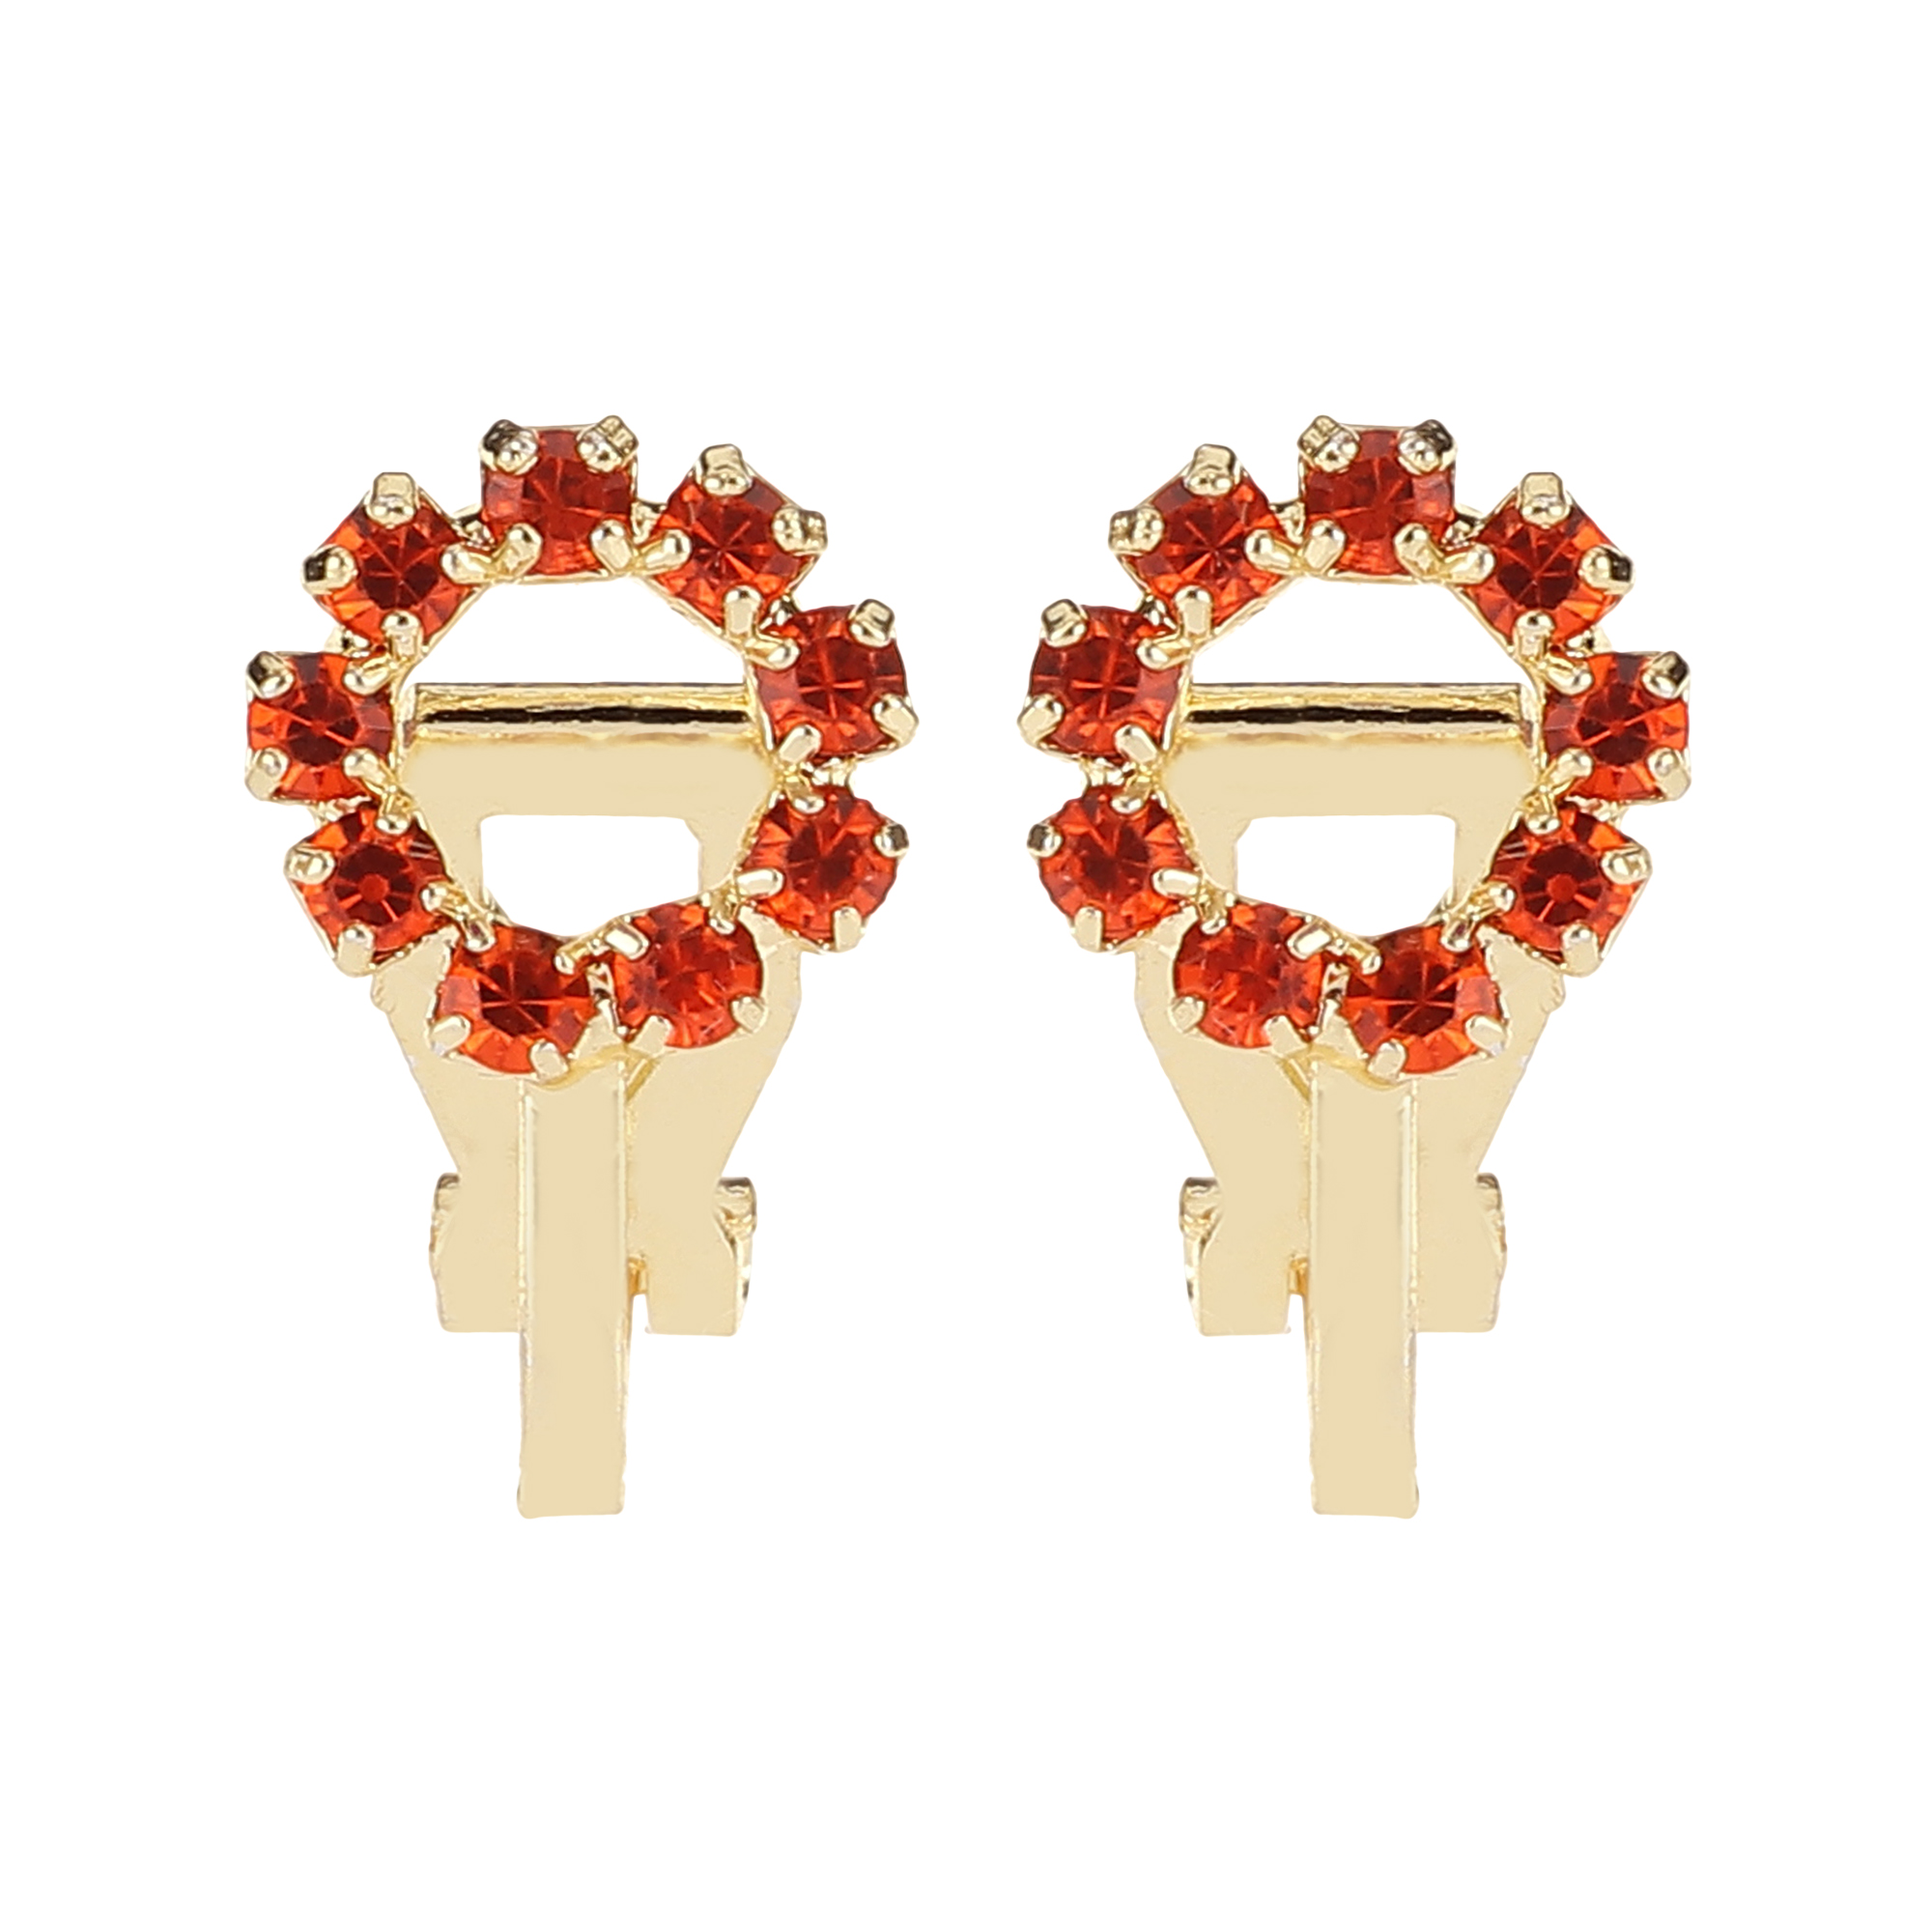 FirstBlush | FirstBlush Clip On Earrings for Non Piearced Ears for Women & Girls; Plating: Gold; Color: Orange; Size: 10 X 10mm; Wt.: 3gm. (MIEC104M127)